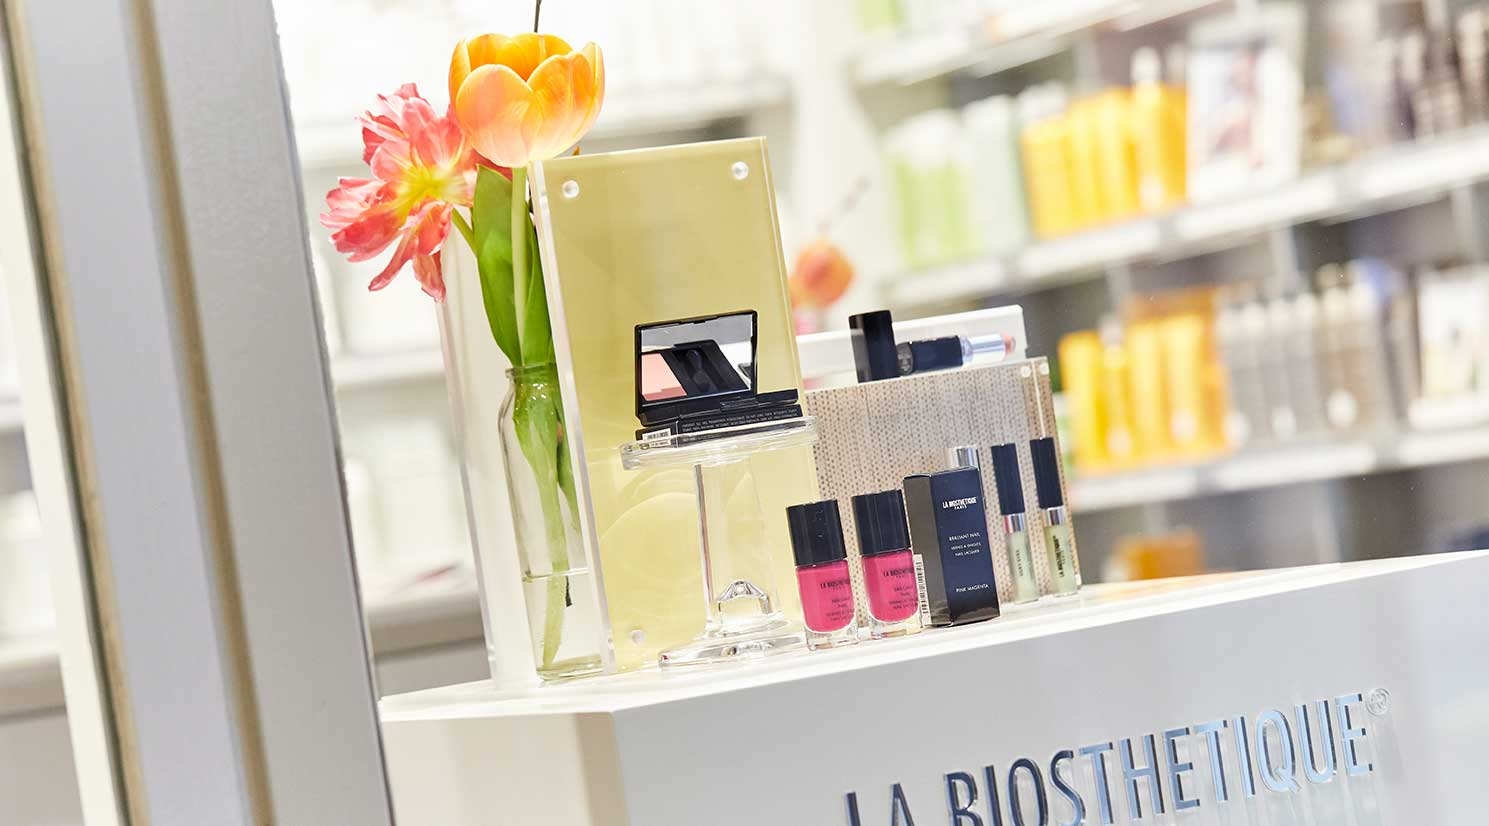 Sevensenses GALLERIA Passage Hamburg La Biosthetique Store